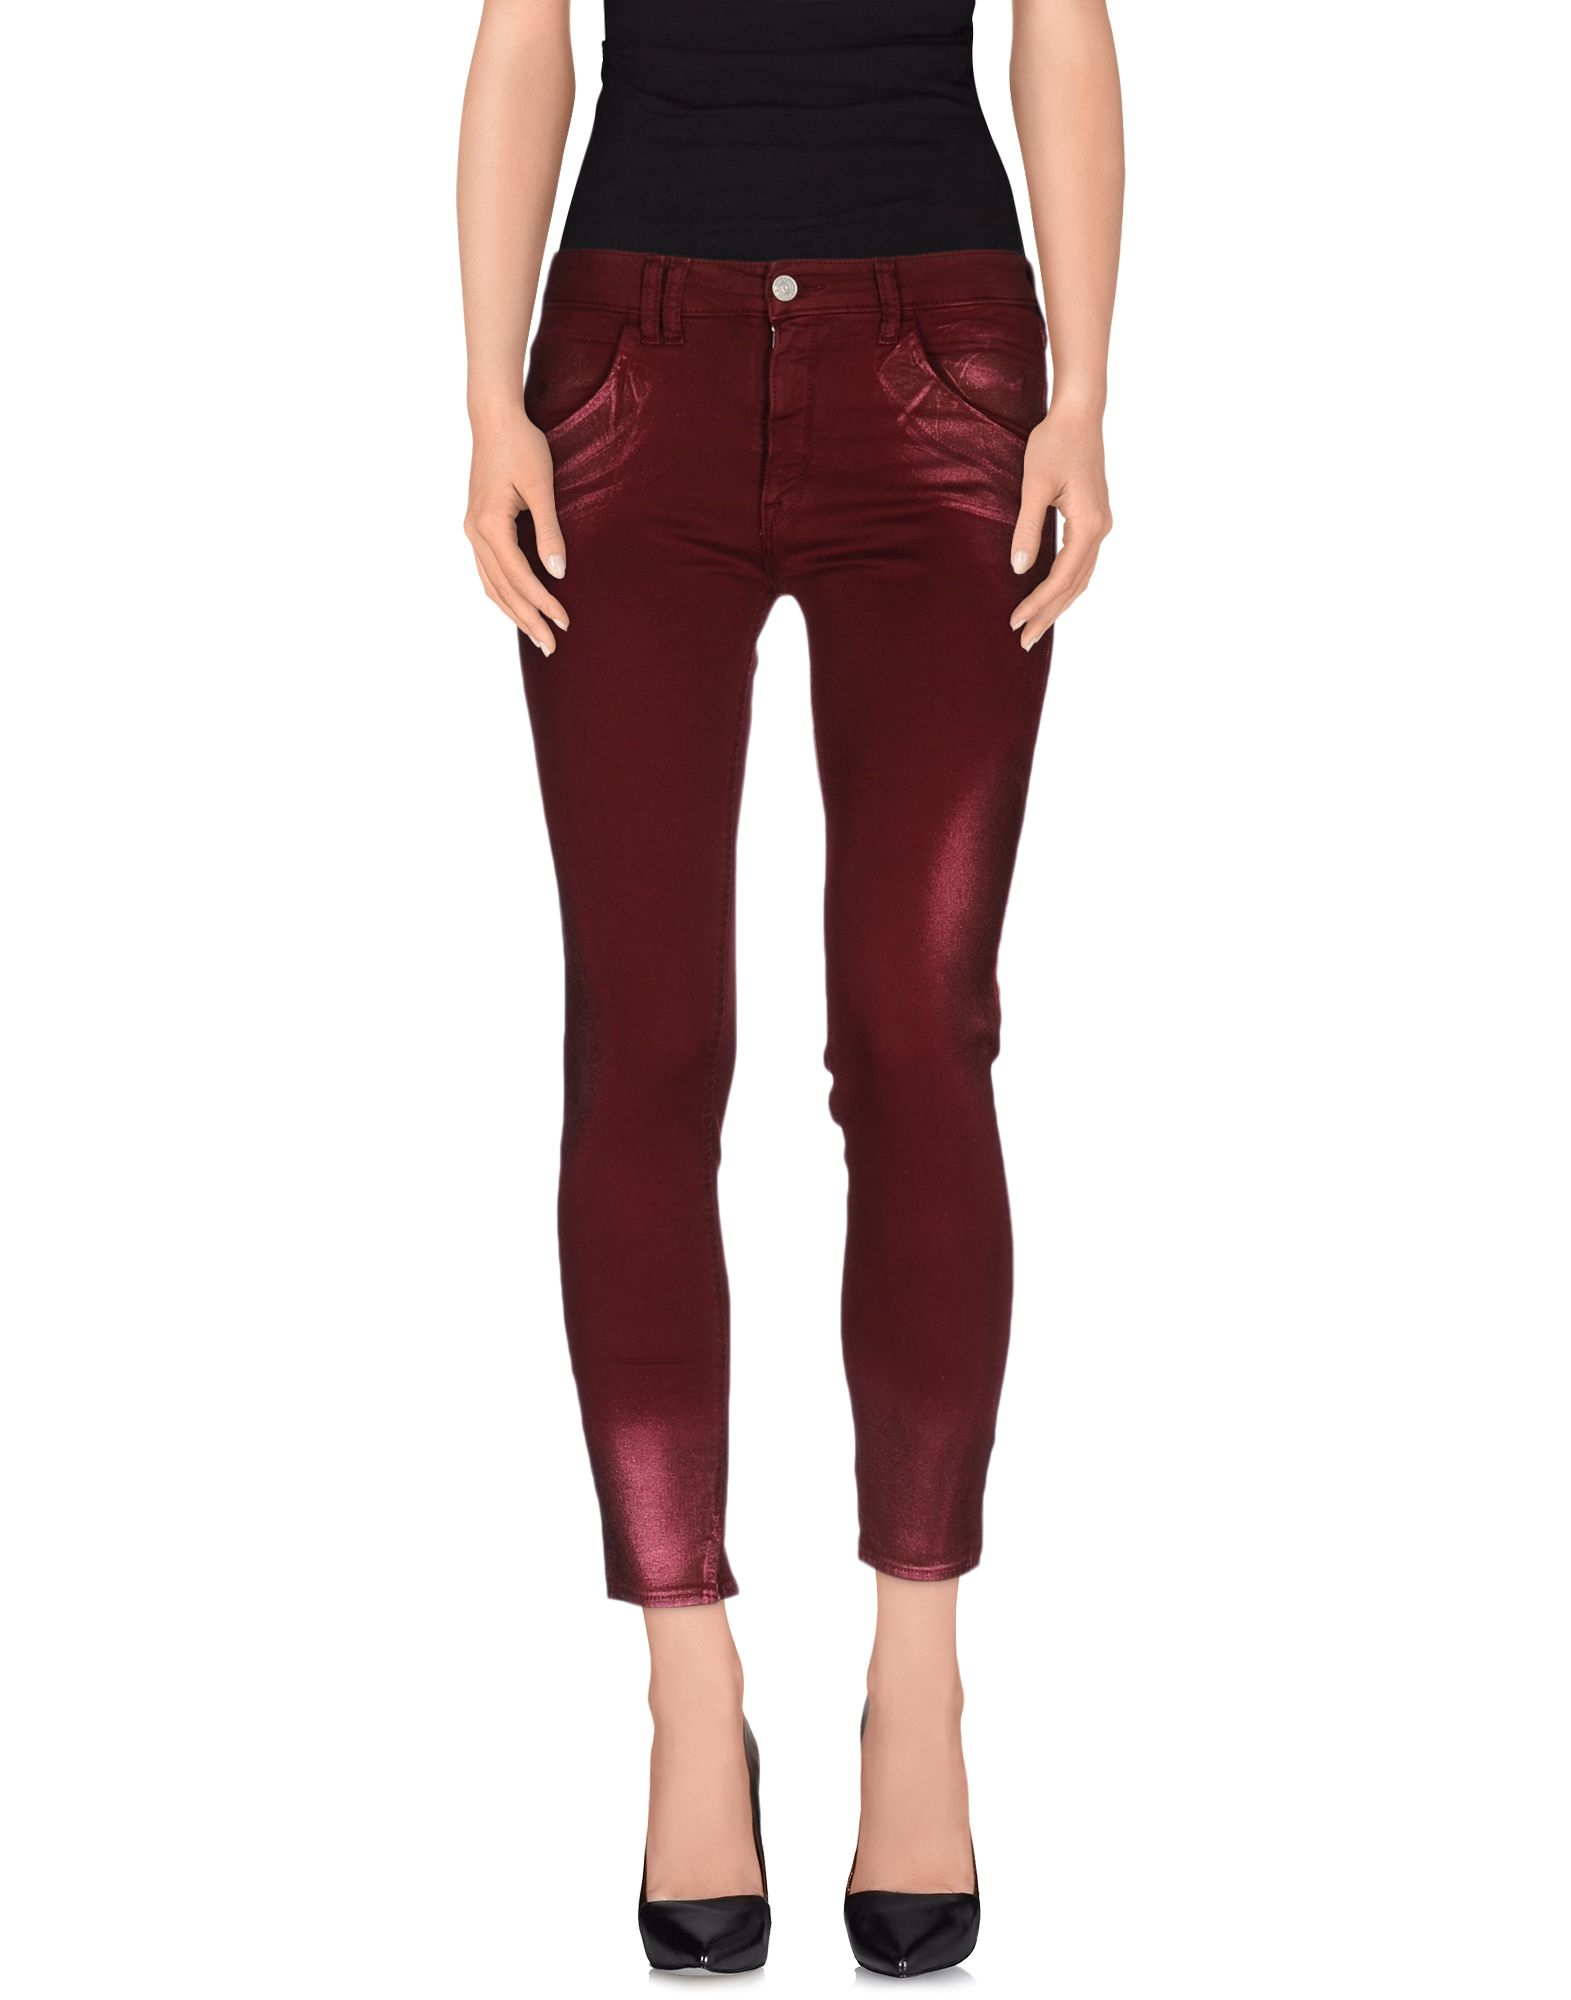 Excellent What To Wear With Maroon Pants  The Best Way To Wear Maroon Pants